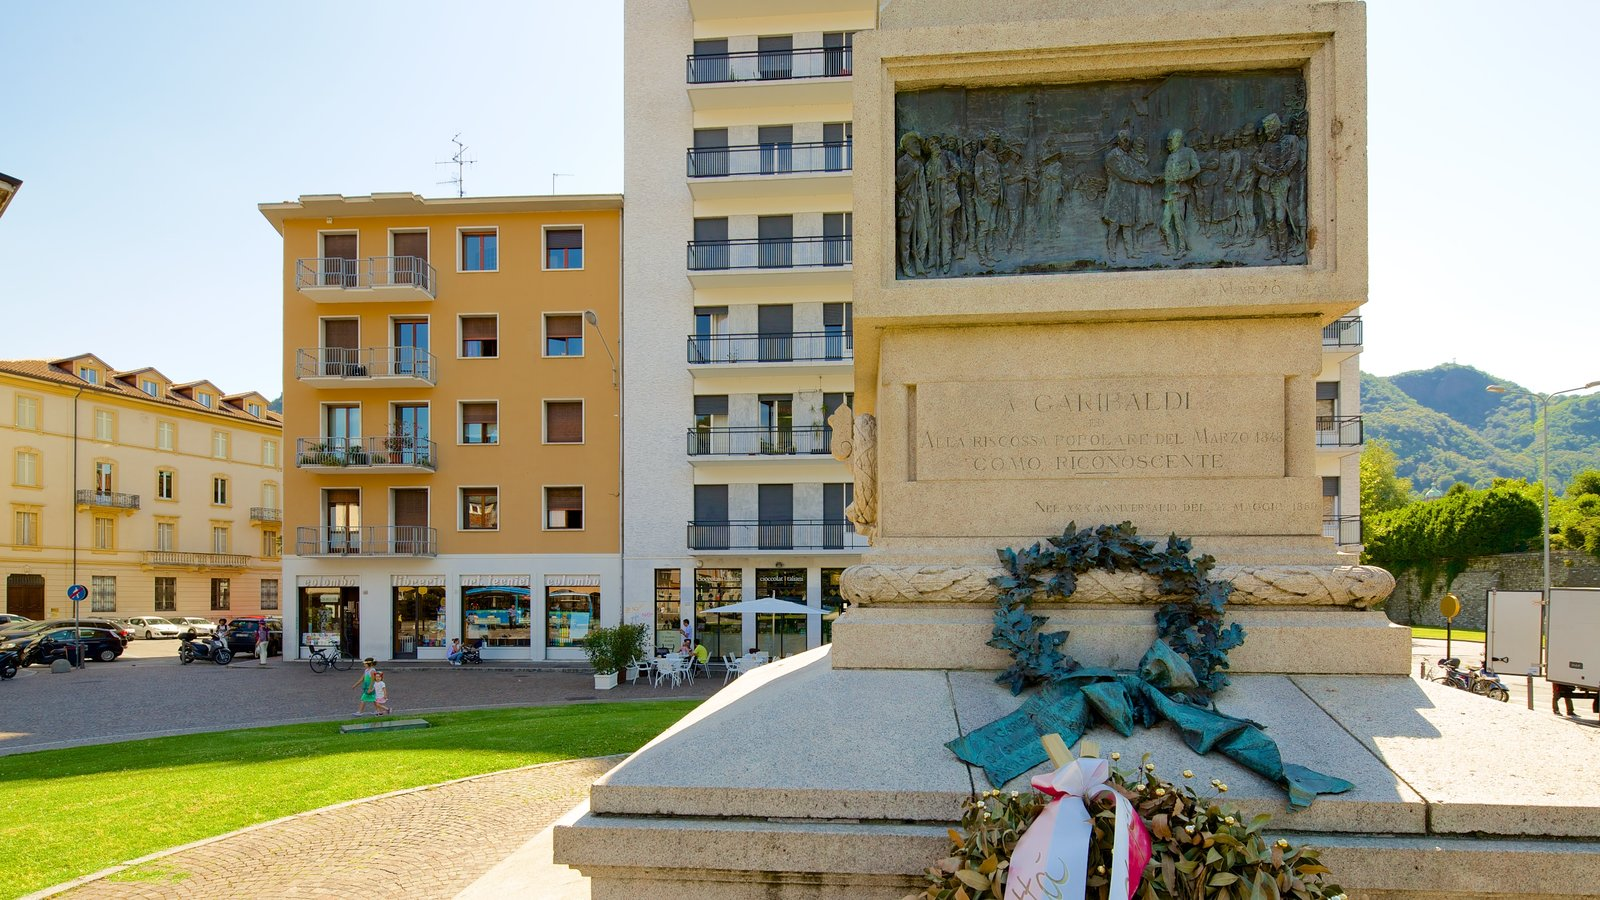 Piazza Vittoria showing a memorial and a monument